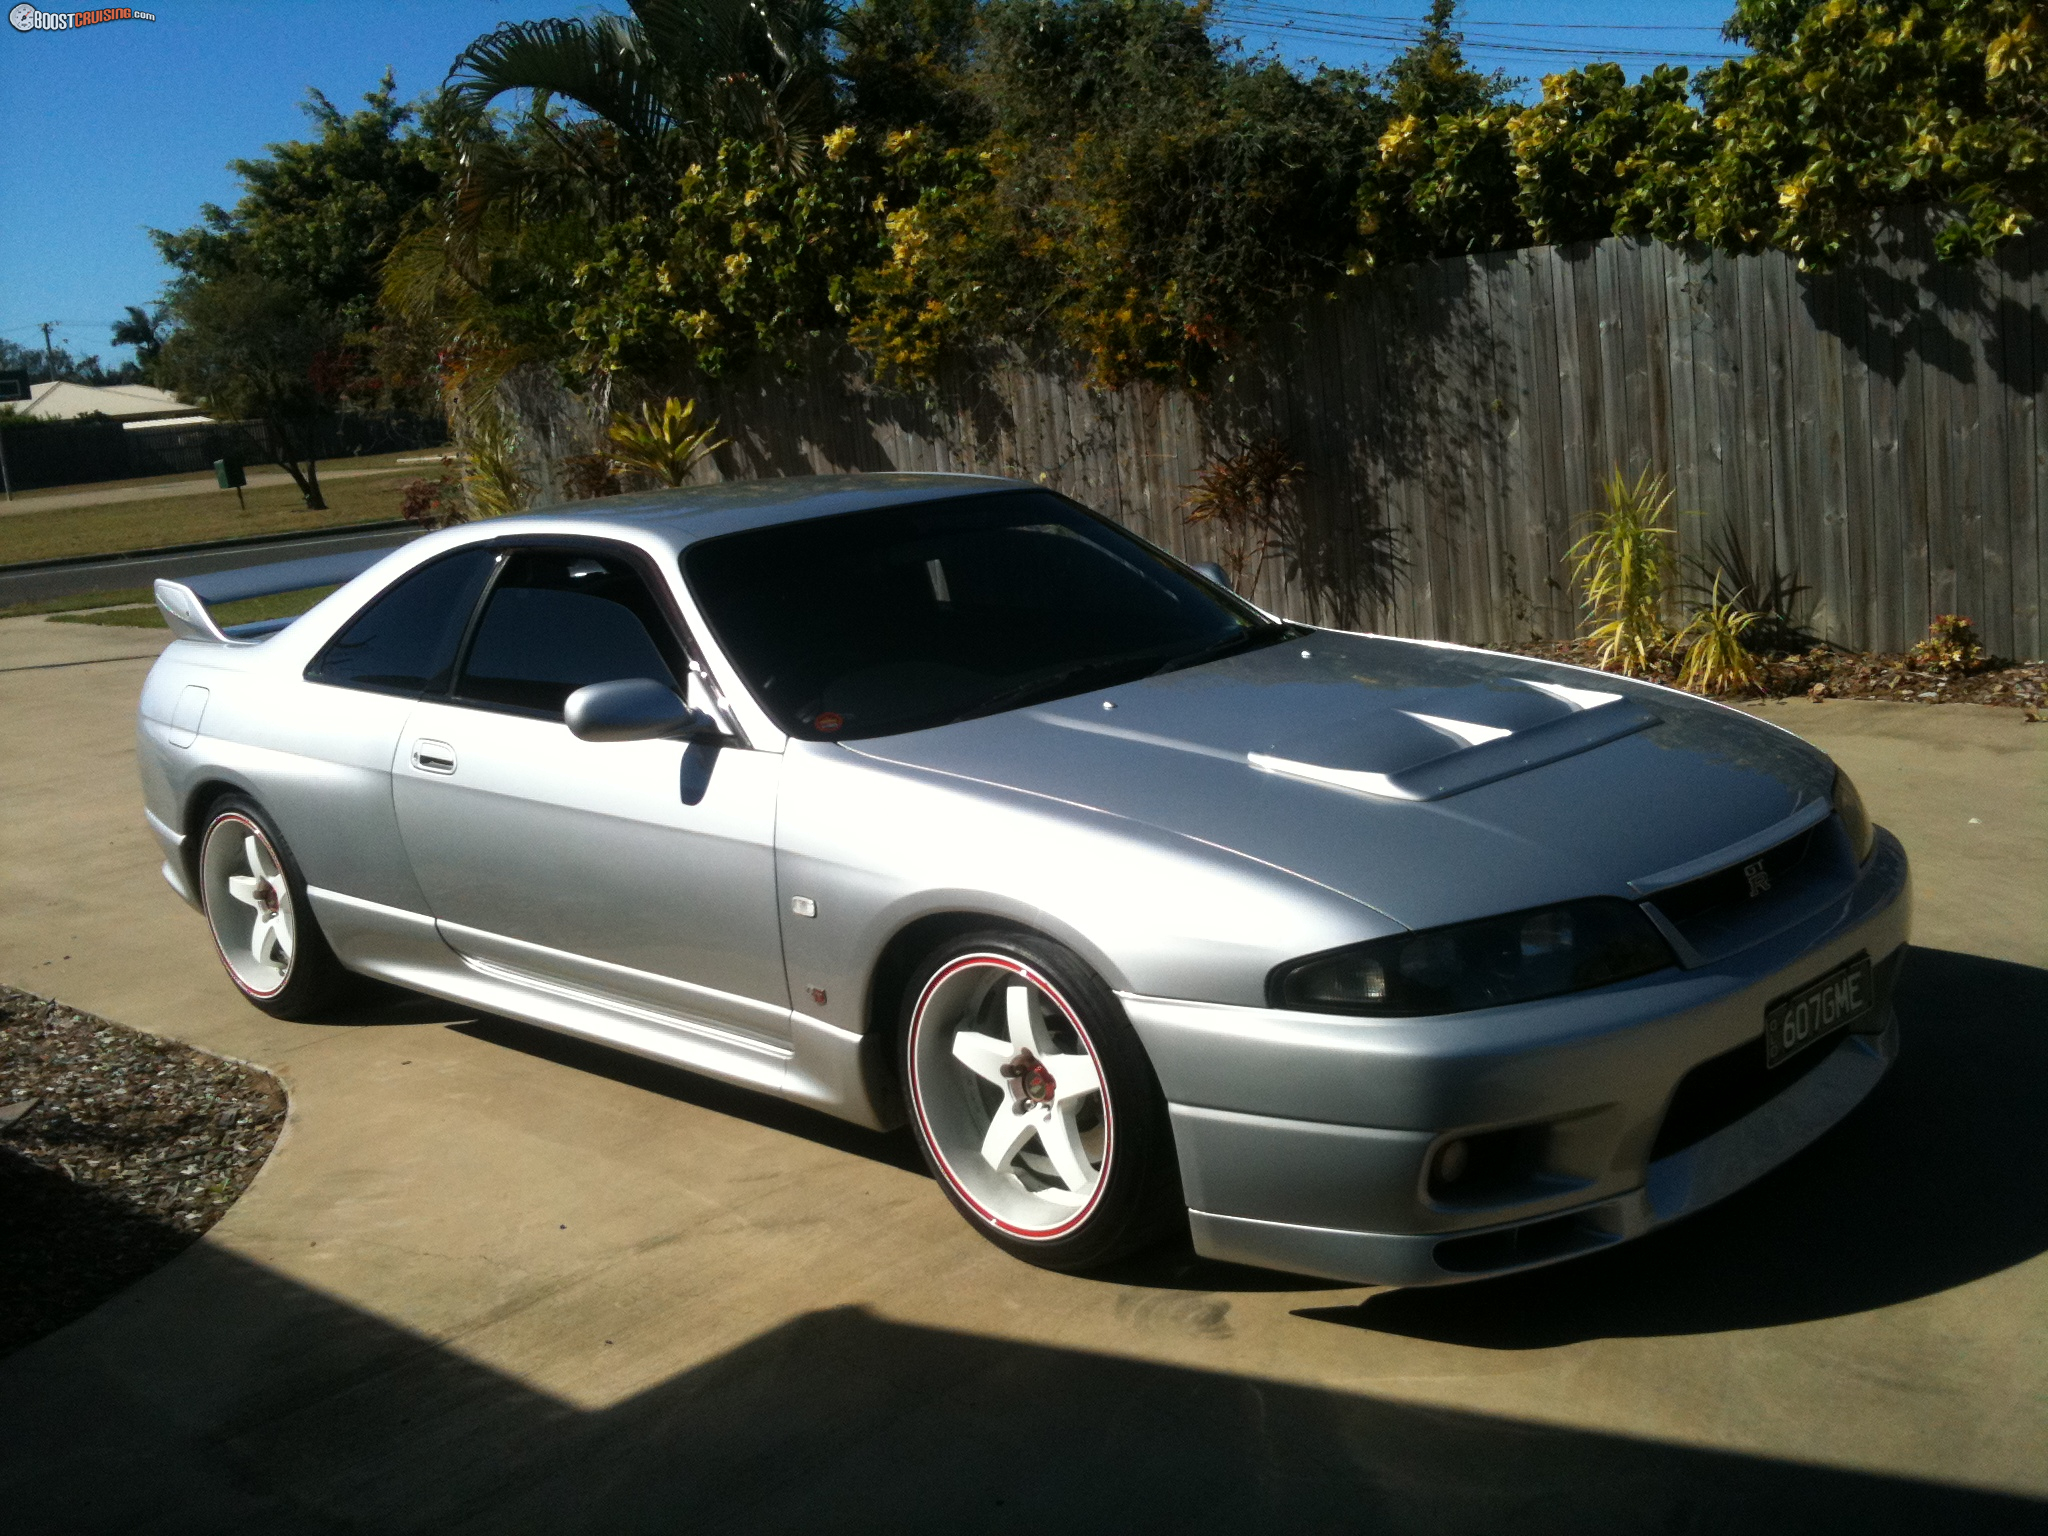 1995 nissan skyline r33 gtr vspec boostcruising. Black Bedroom Furniture Sets. Home Design Ideas